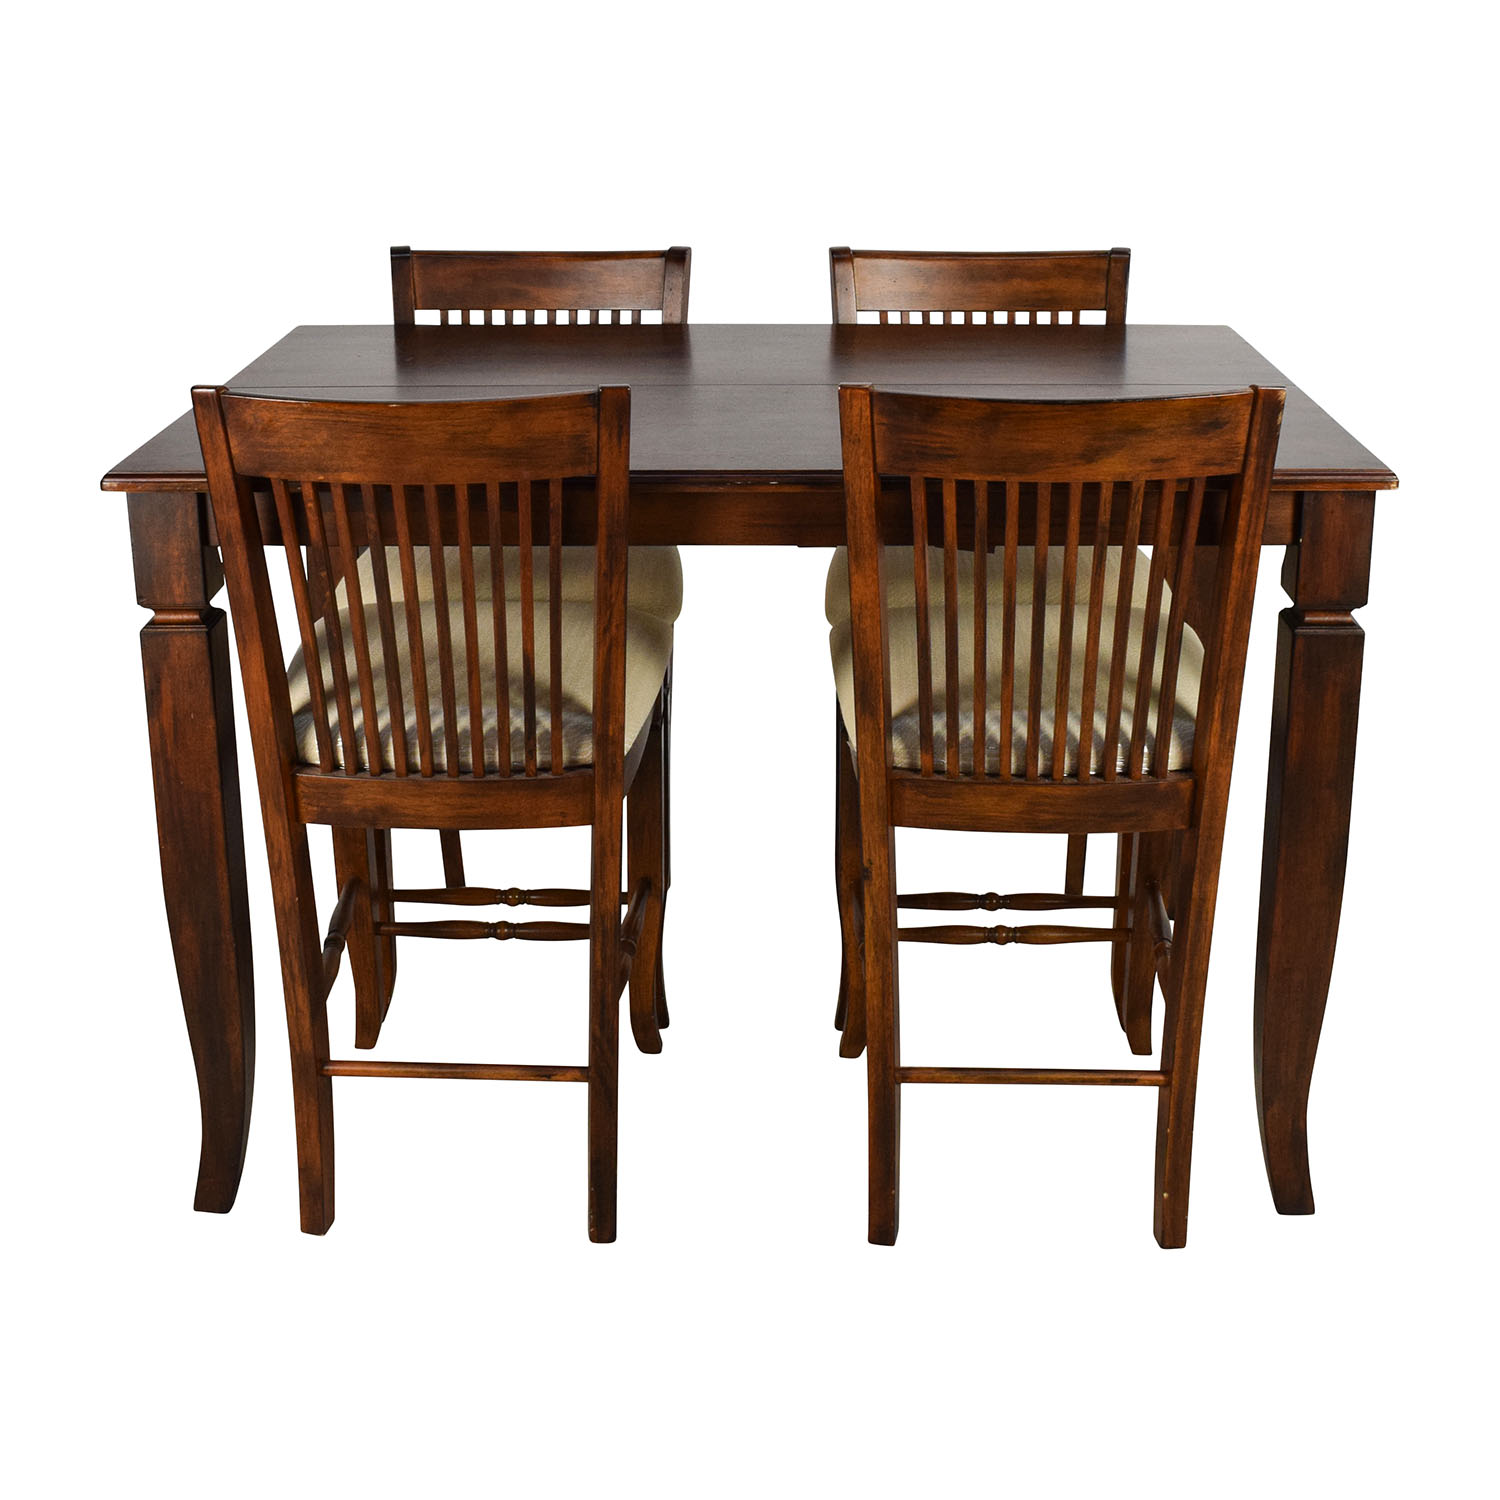 Set Dining Room Table: Tall Extendable Dining Room Table Set / Tables